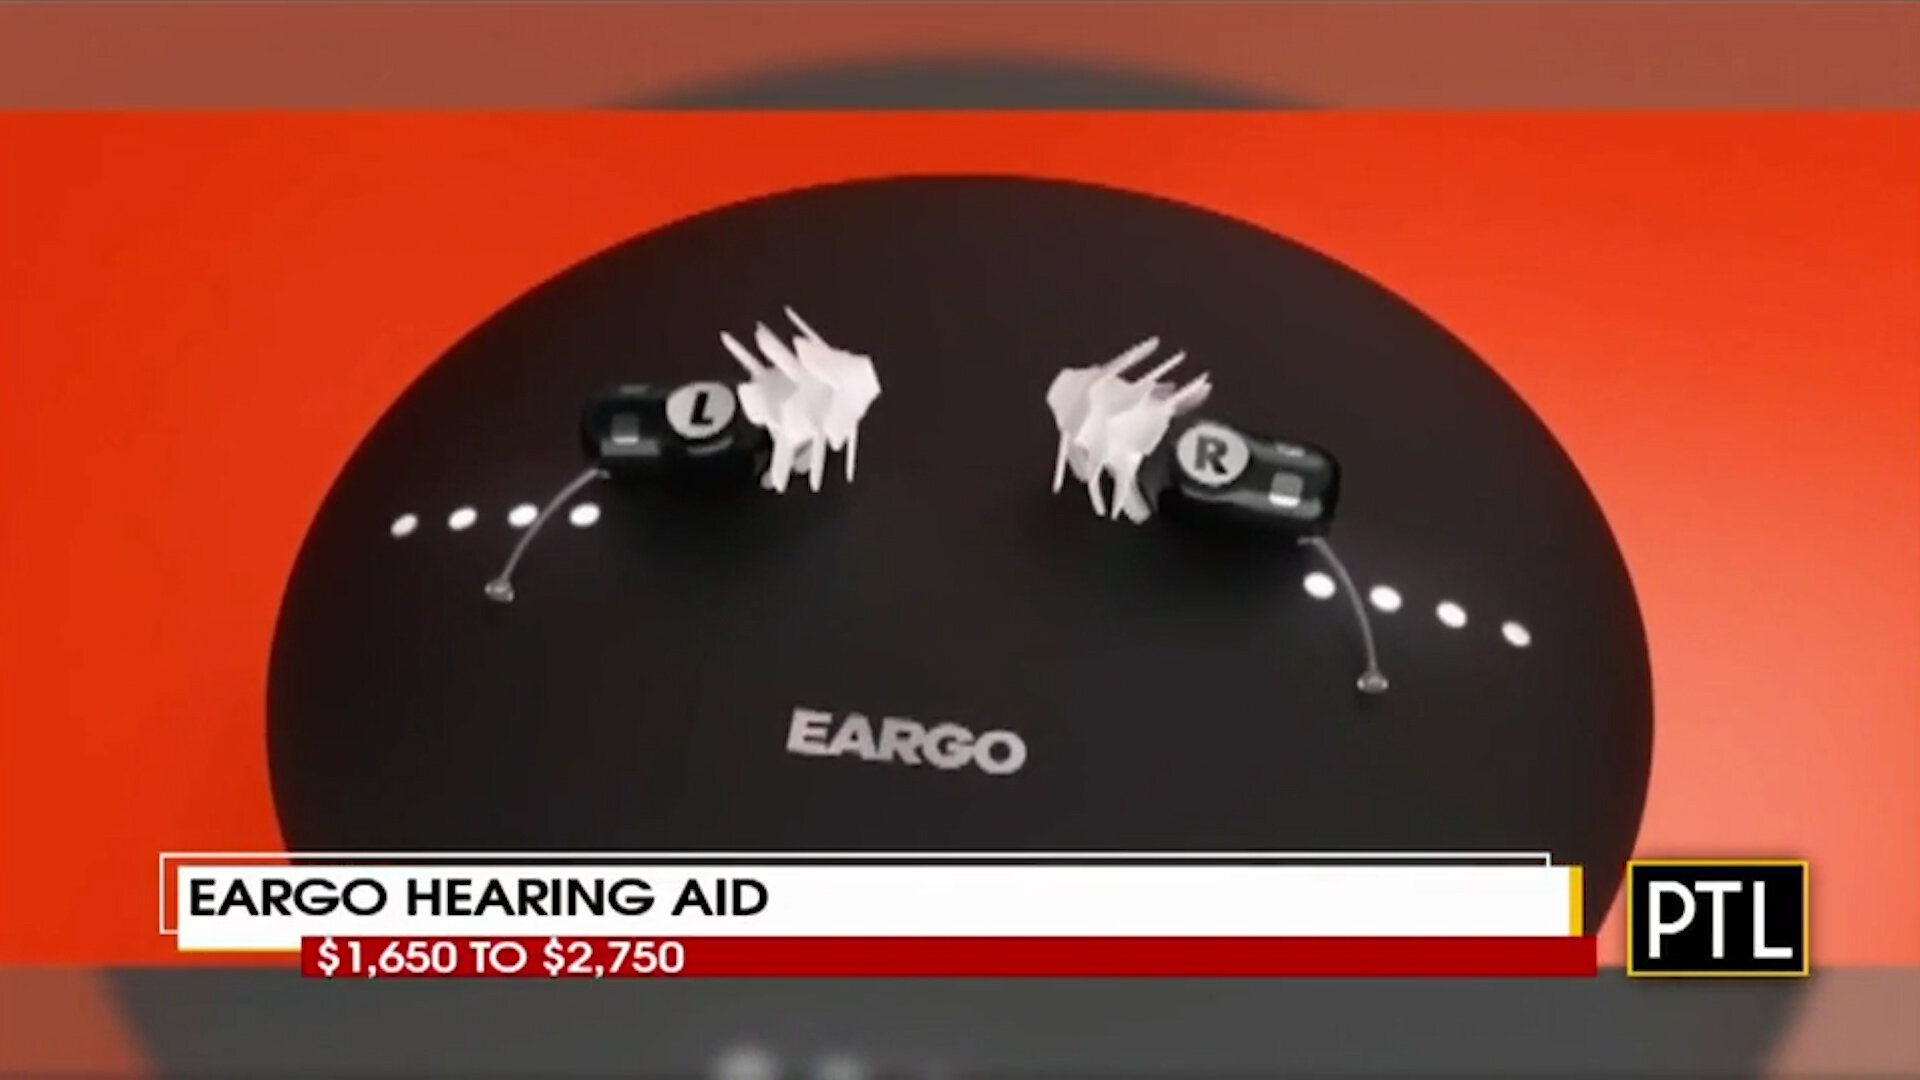 EARGO HEARING AID - $1,650 to $2,750Shop Now